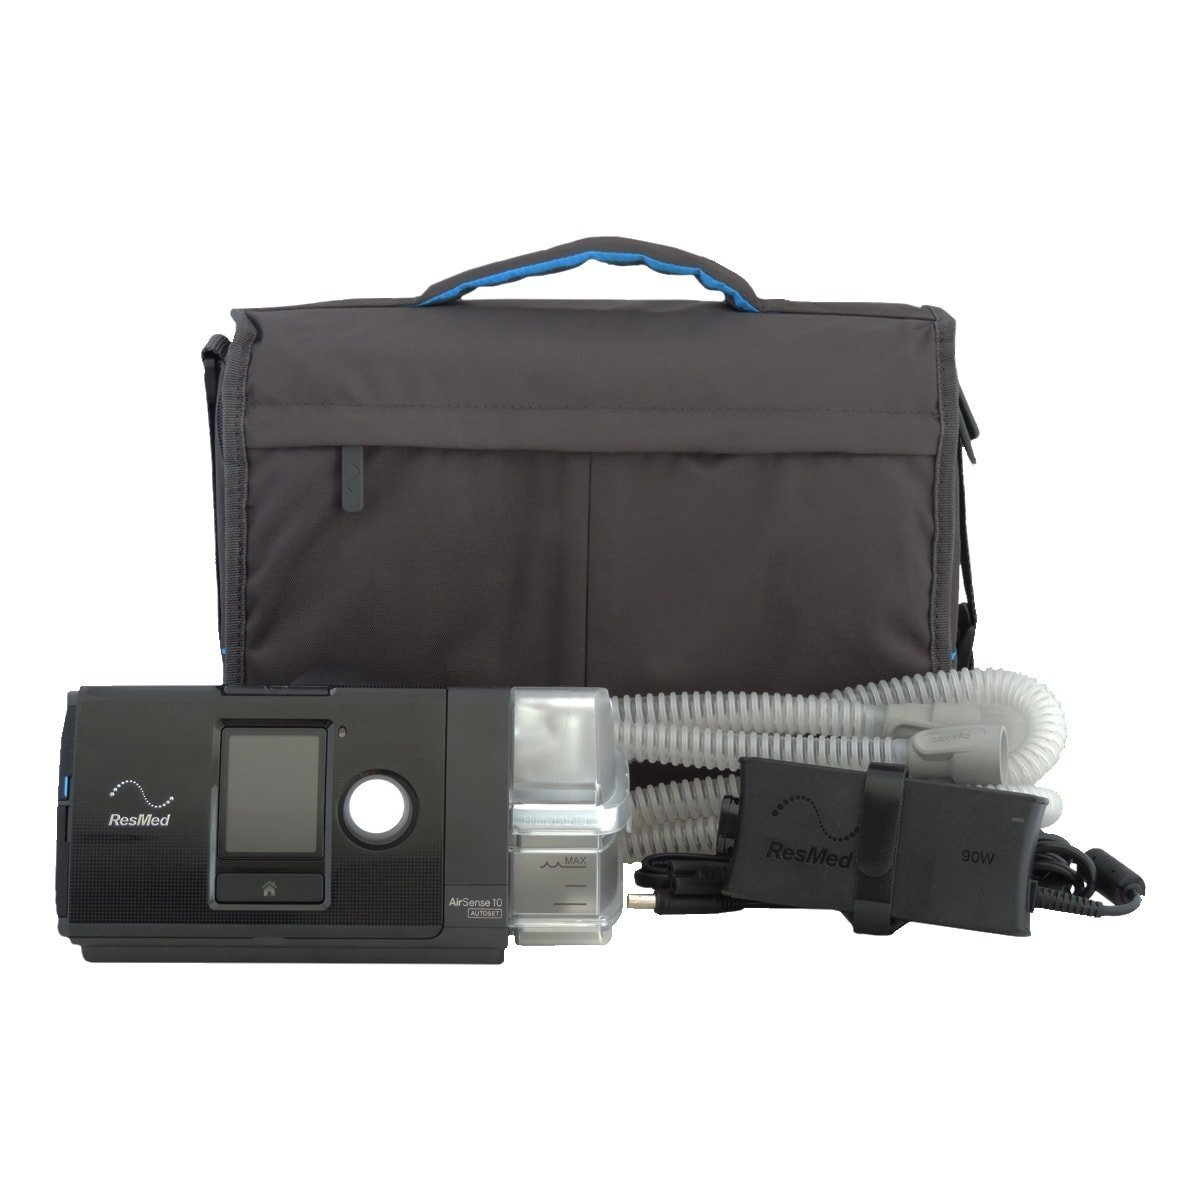 Res_Med_Airsense_10_Autoset_With_Heated_HumidAir and _Heated Tube_ (37208)